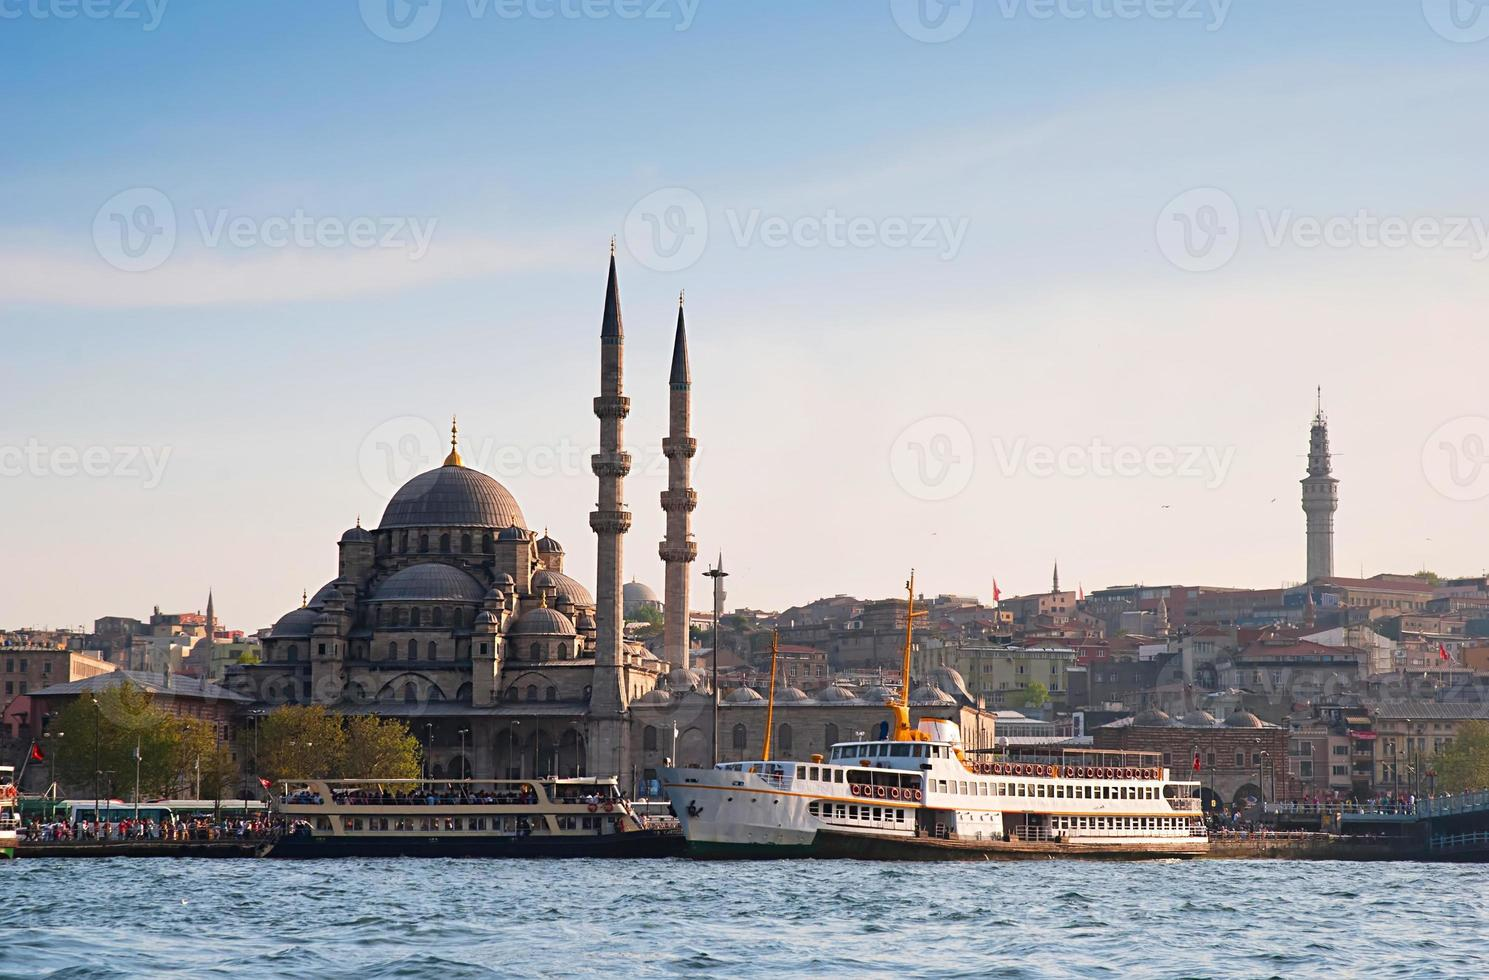 Istanbul New Mosque and Ships, Turkey photo